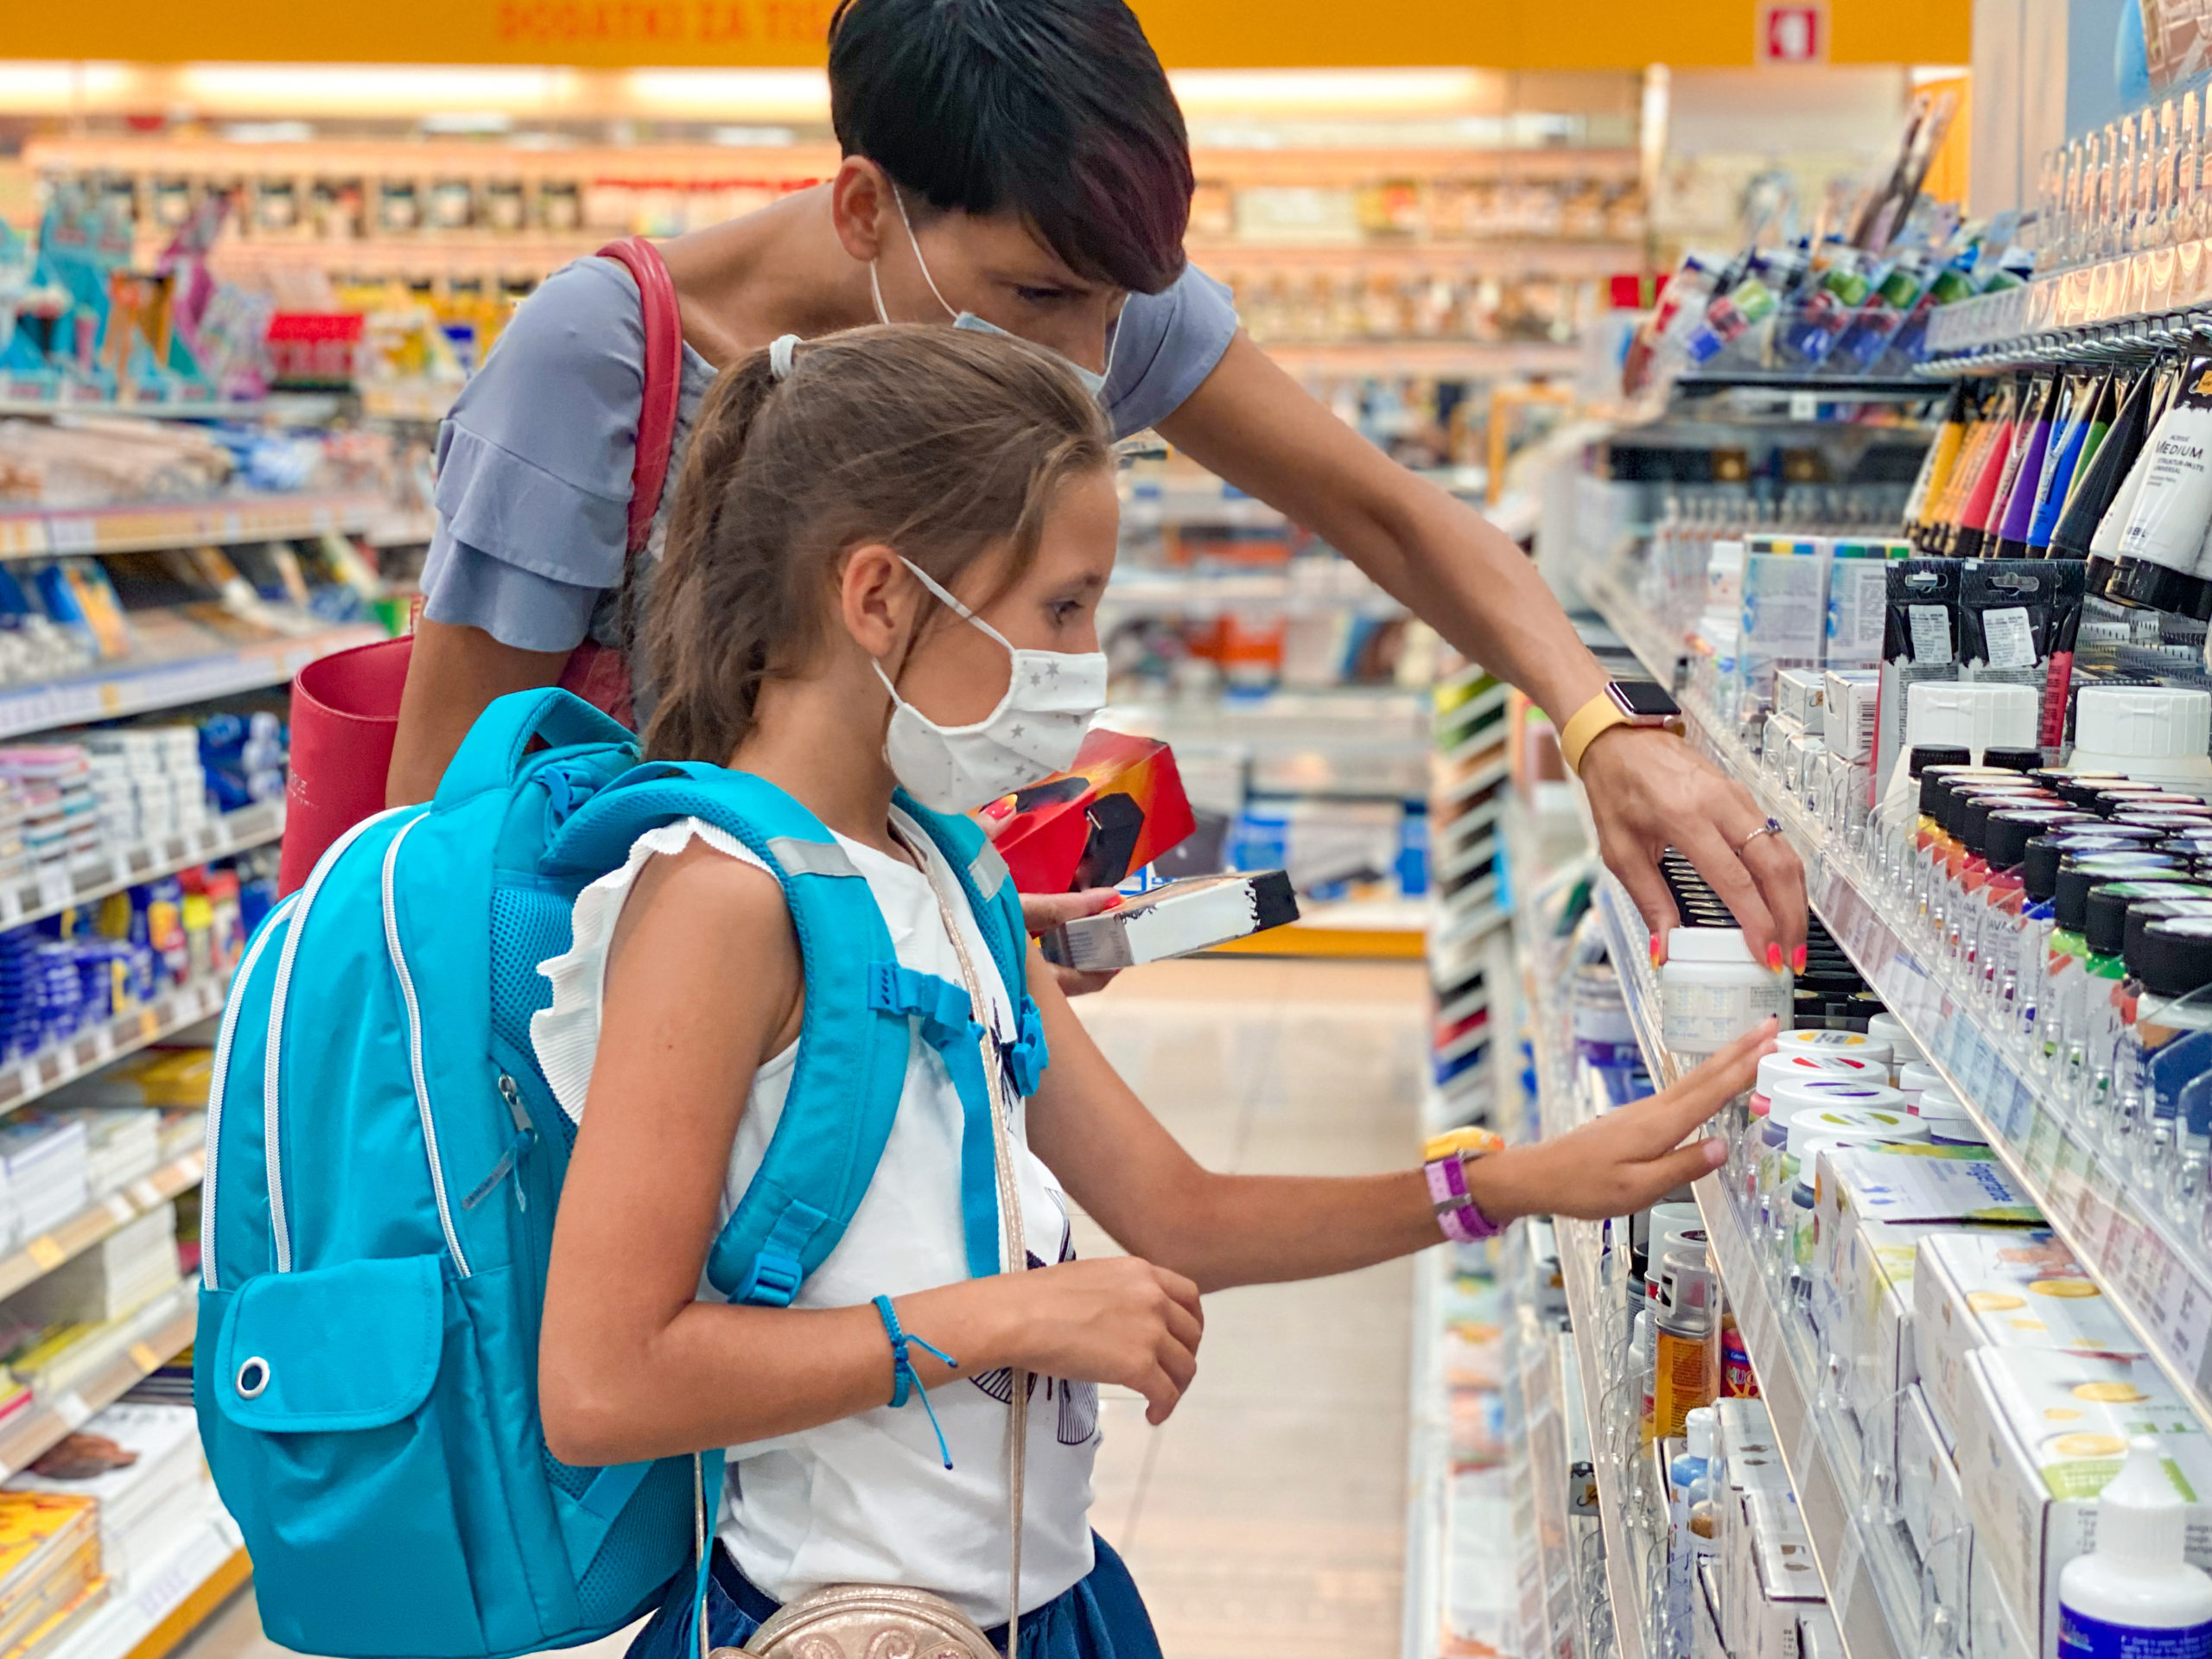 Saving money on back to school in Covid times